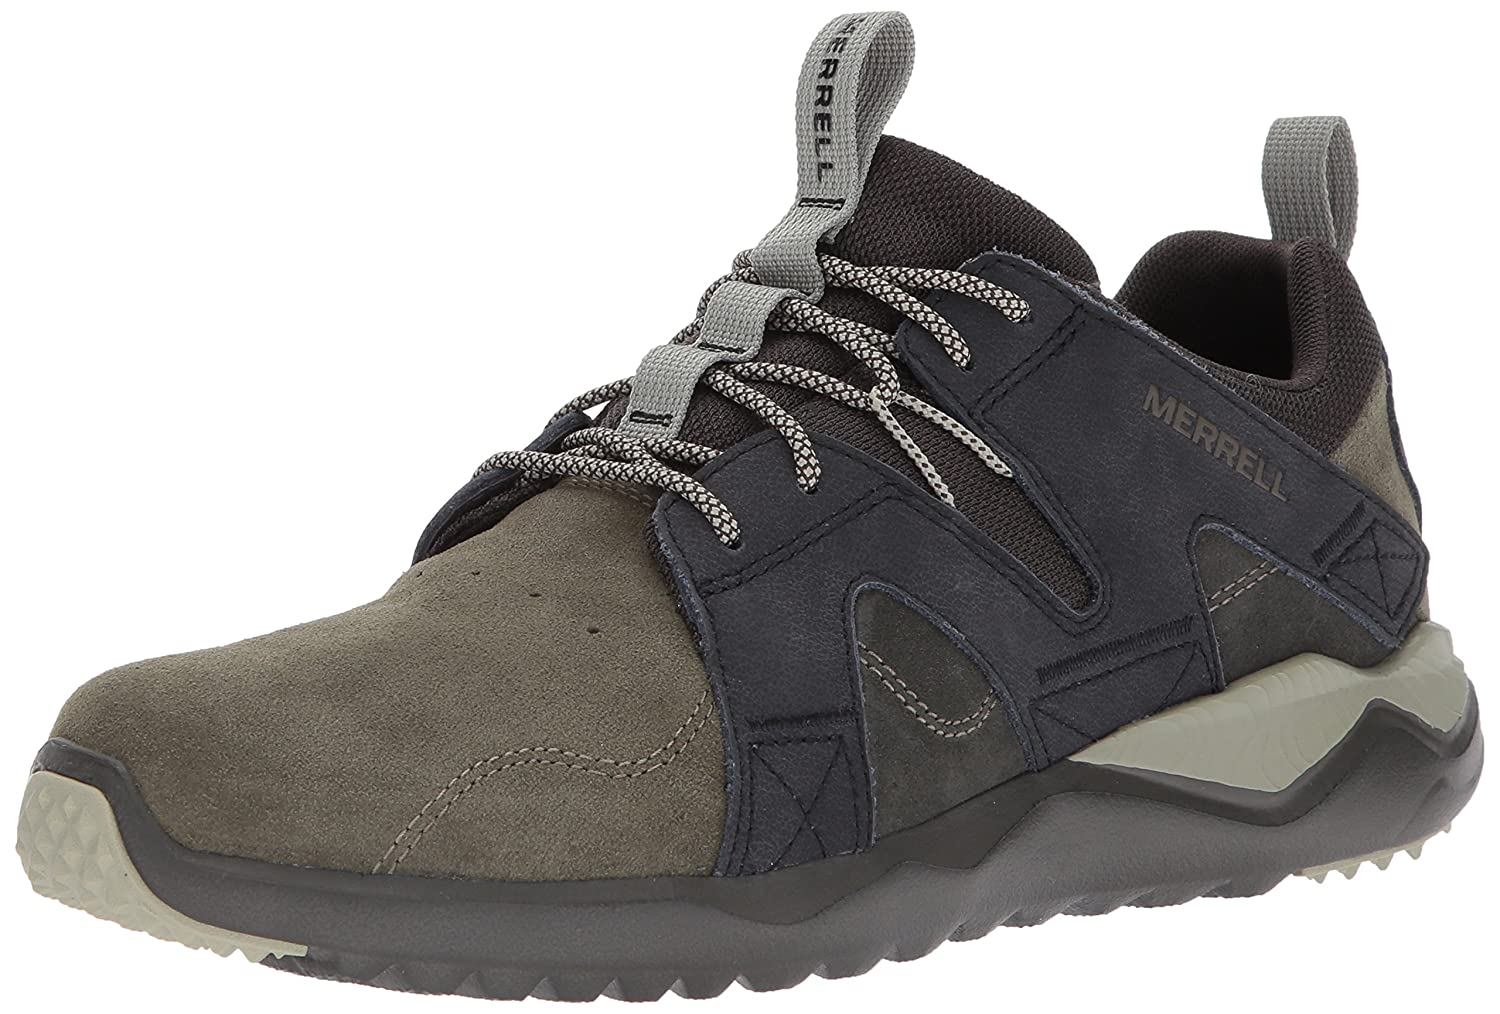 Vert (Dusty Olive) Merrell 1six8 Lace LTR, paniers Homme